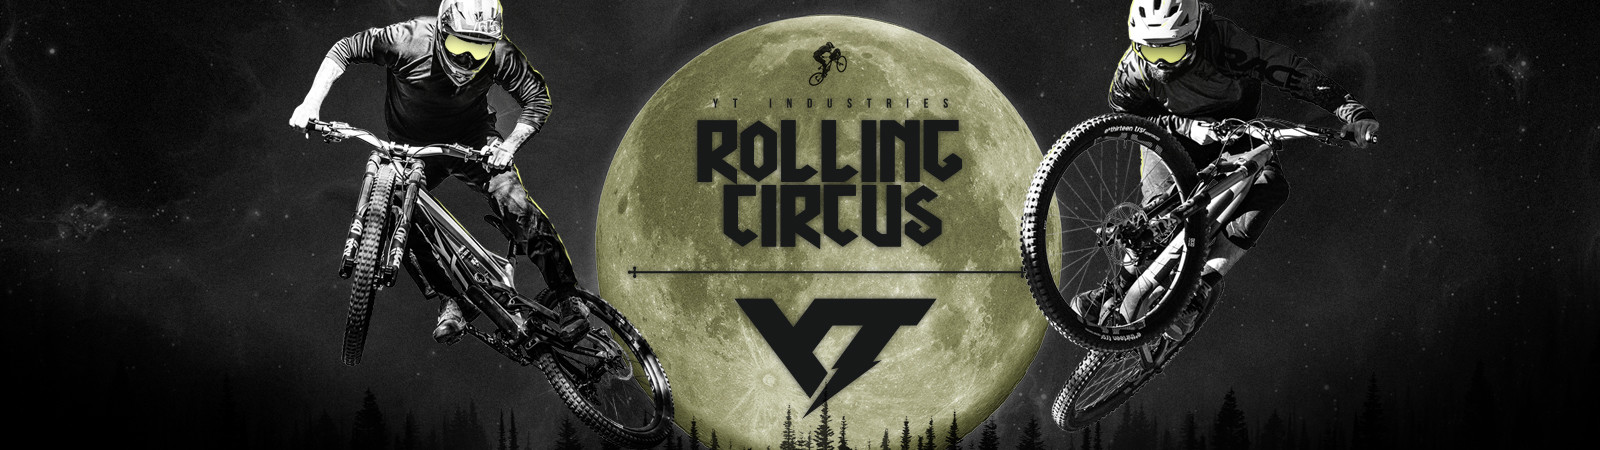 YT Announces 2019 Rolling Circus Demo Tour Dates